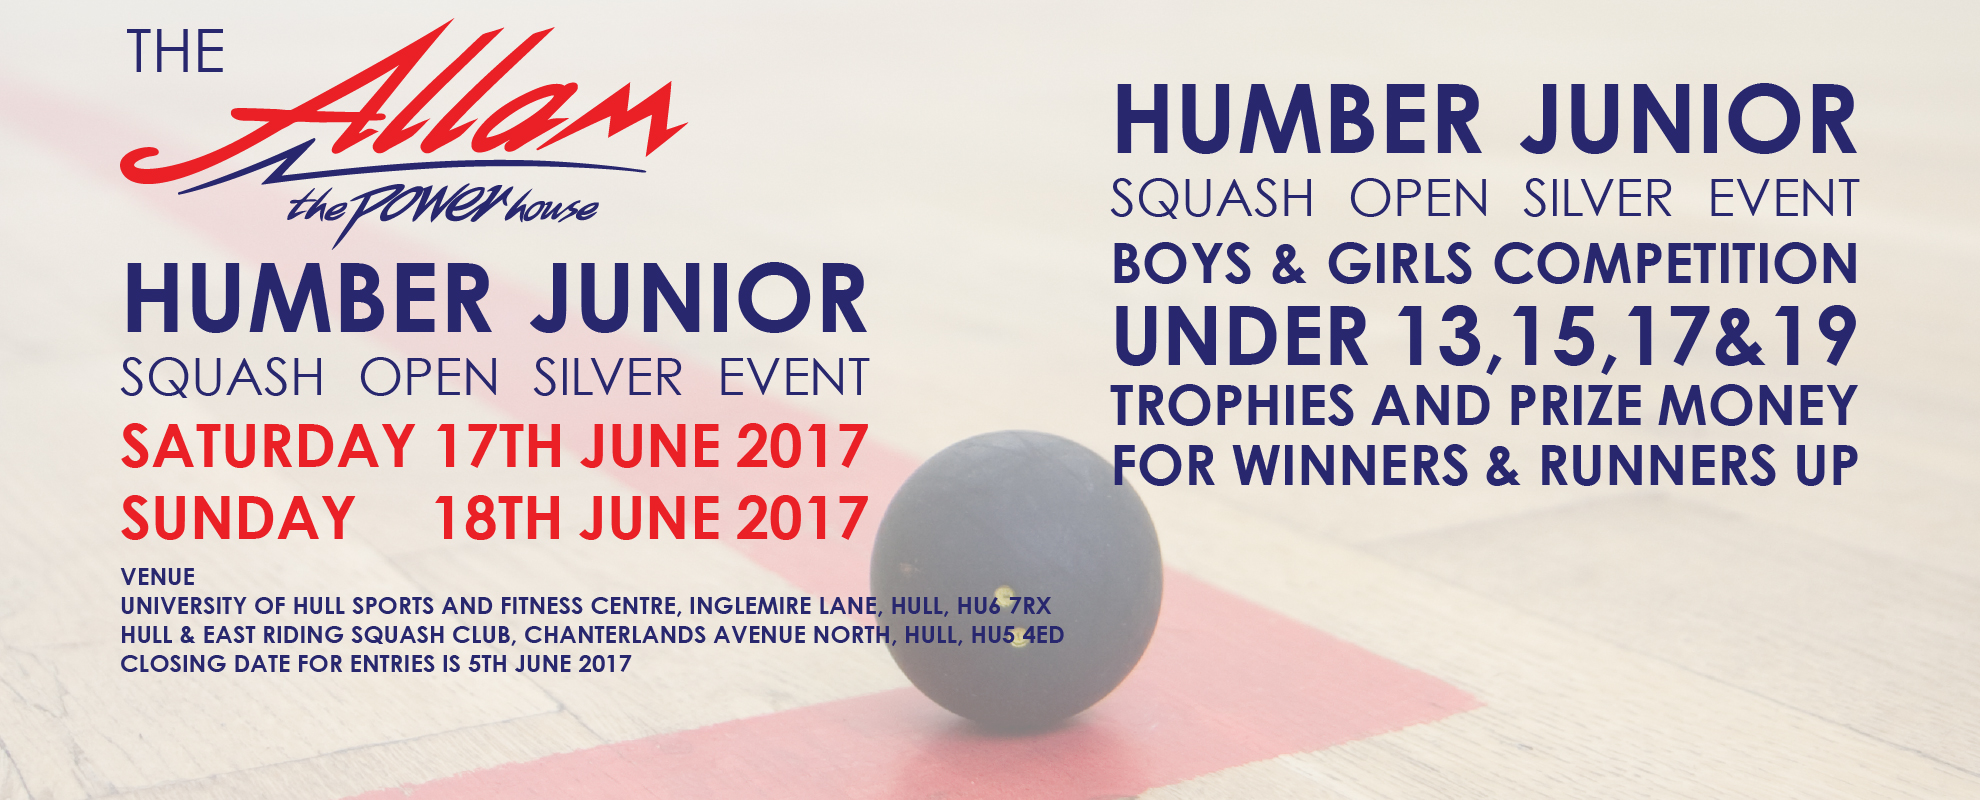 ALLAM HUMBER JUNIOR OPEN - SILVER EVENT  2017 - APPLICATION FORM